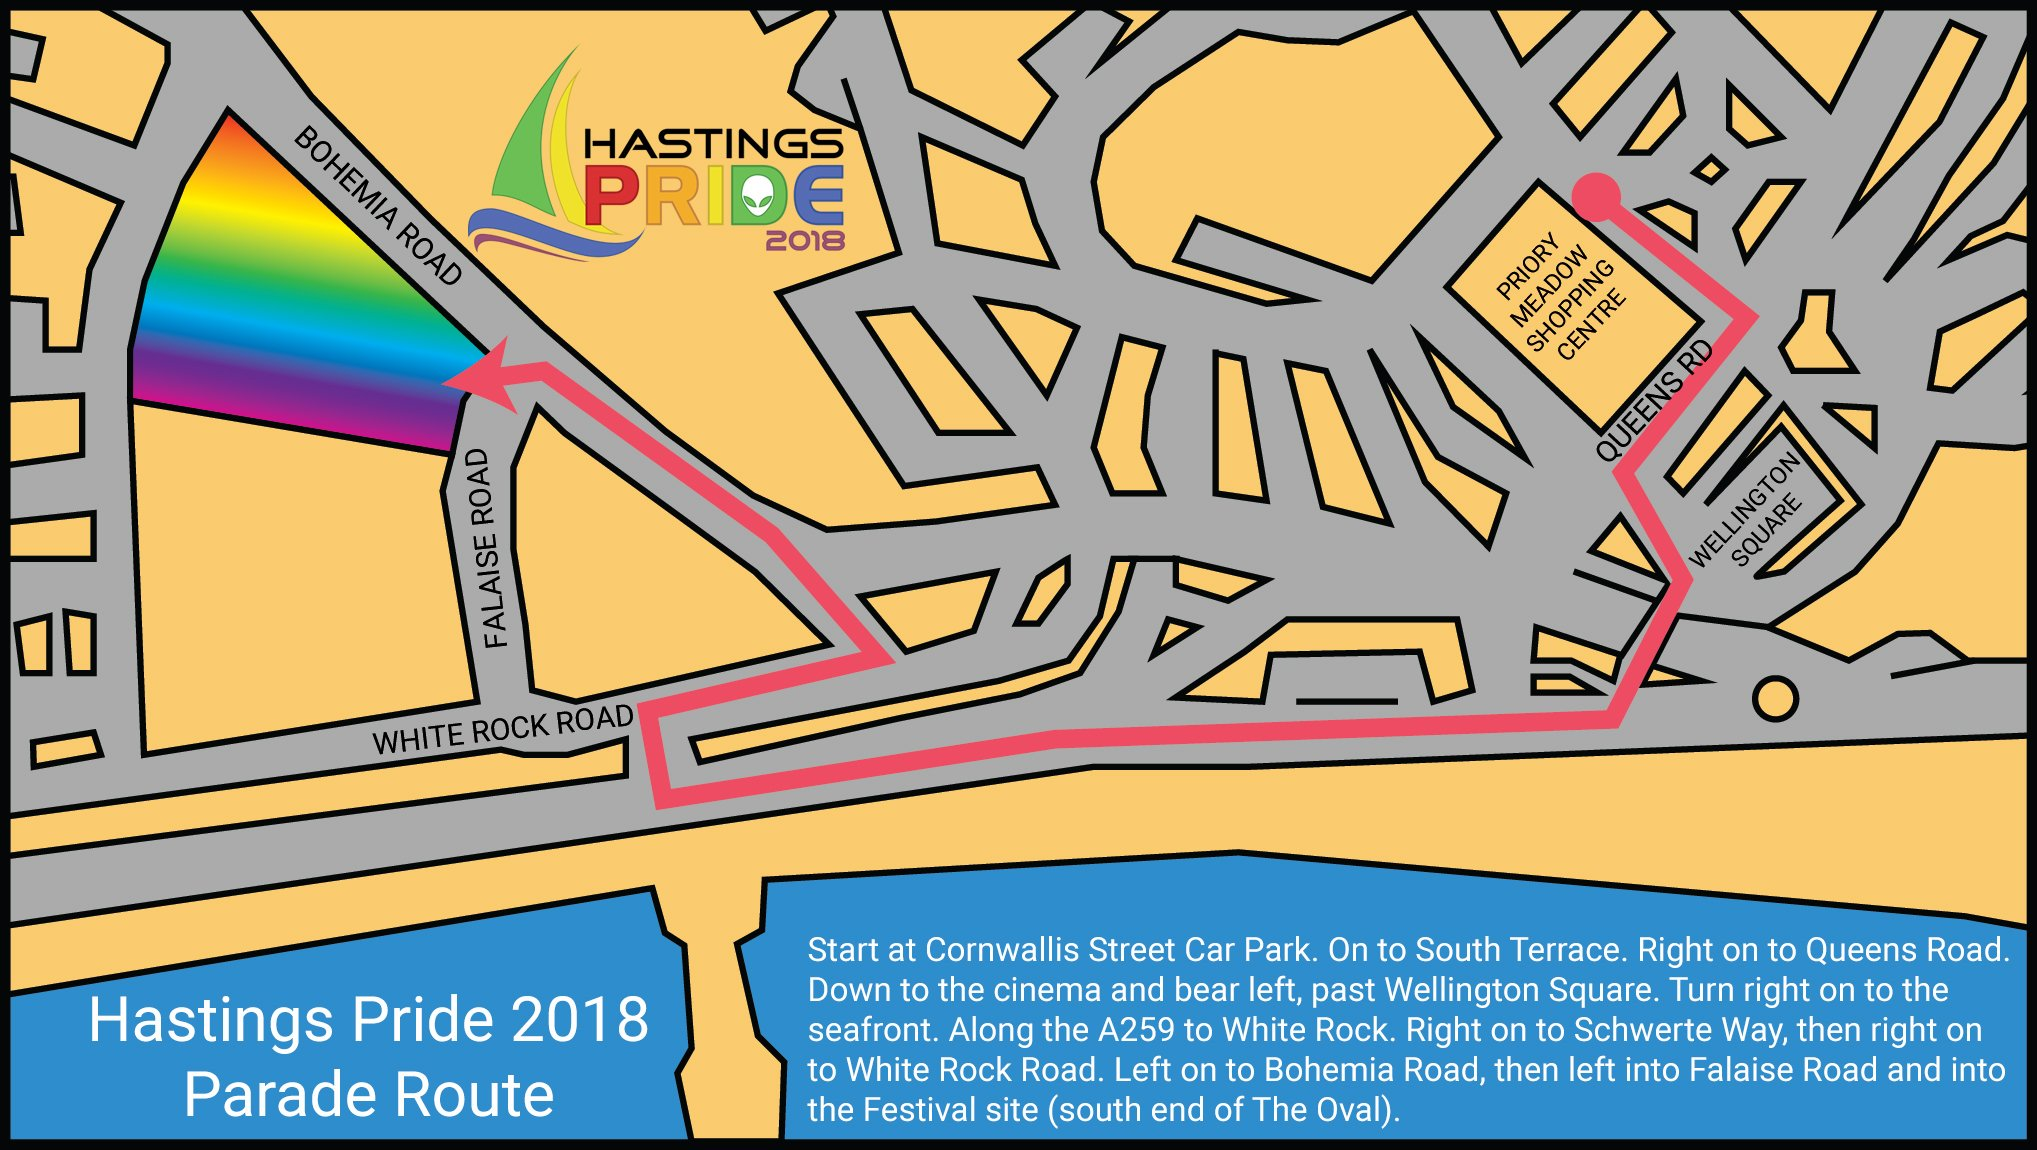 Hastings Pride 2018 Parade Route